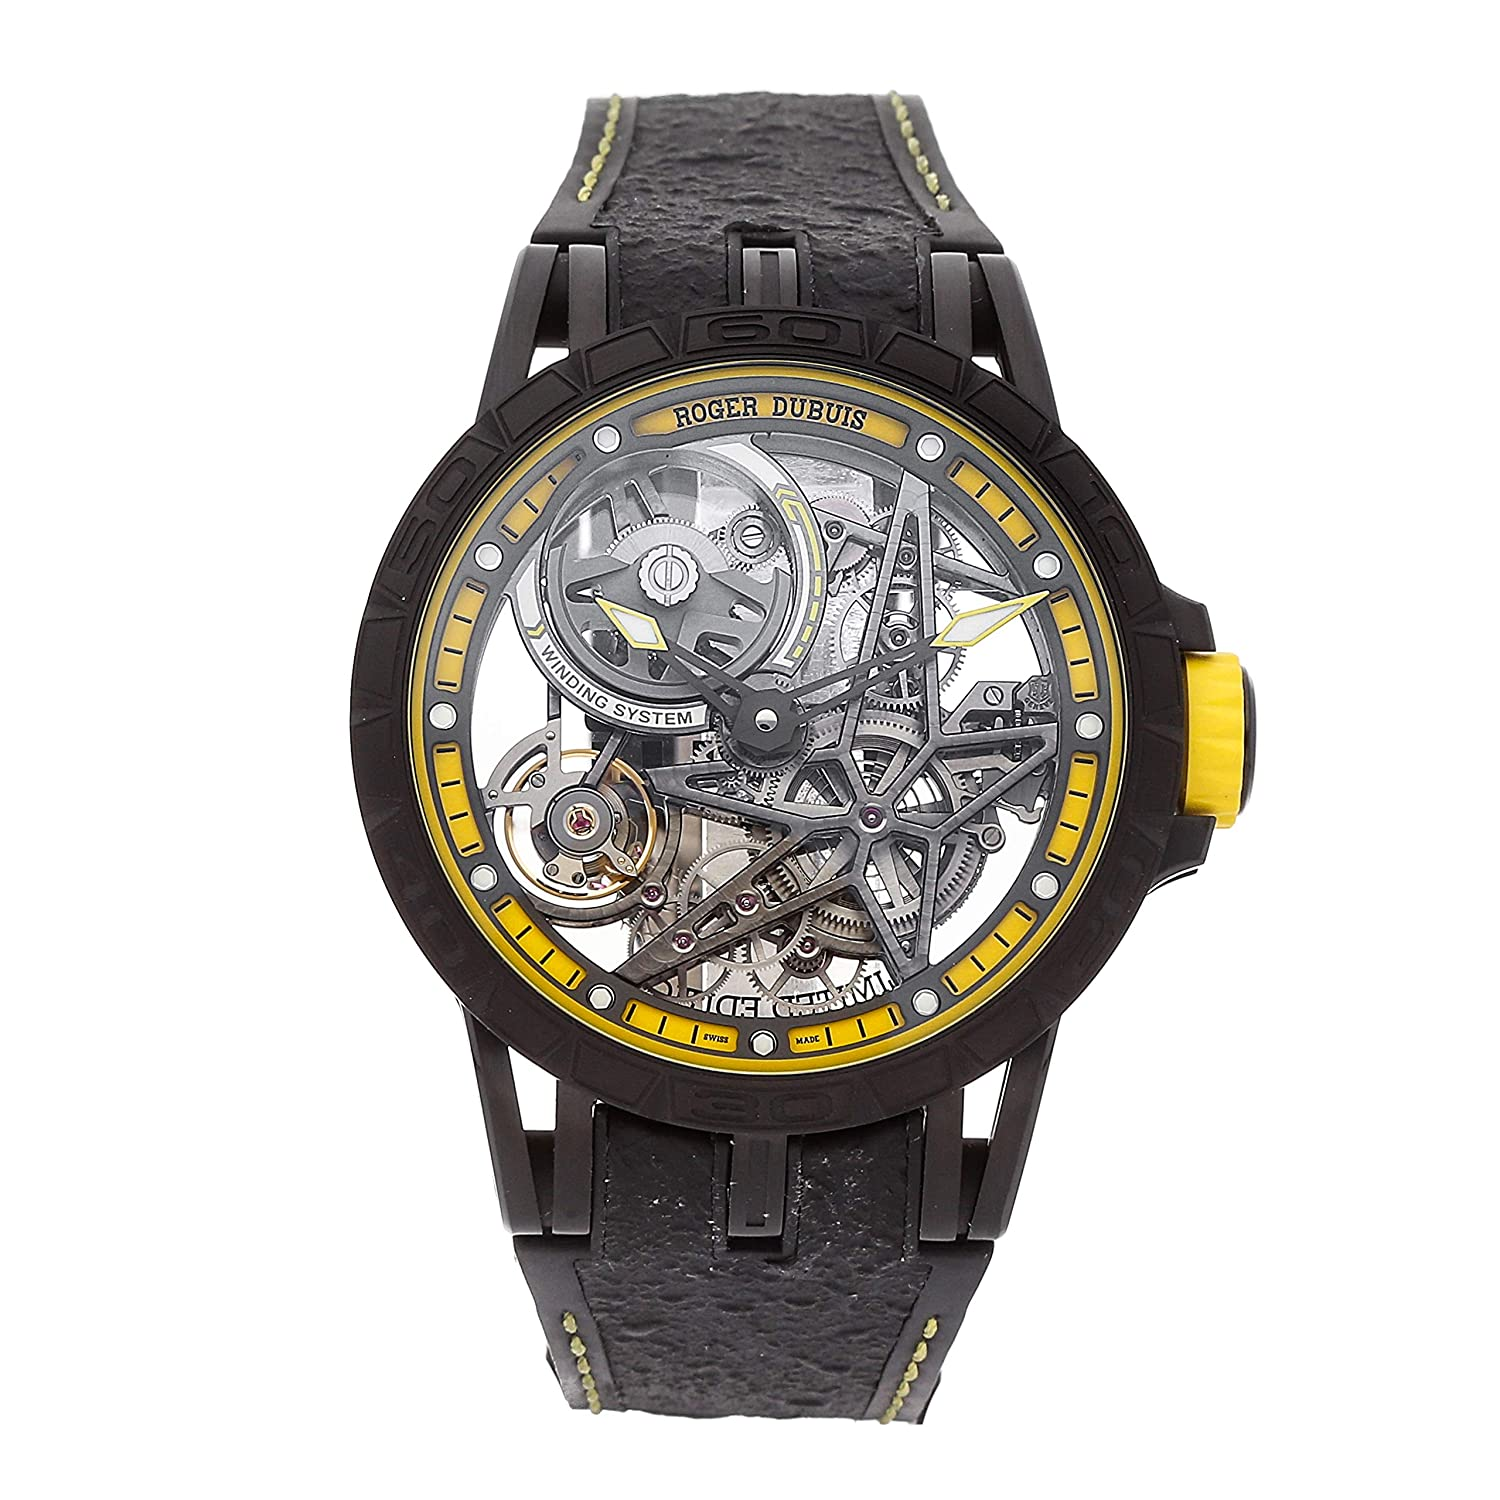 Roger Dubuis Excalibur Mechanical (Automatic) Skeletonized Dial Mens Watch DBEX0616 (Certified Pre-Owned)